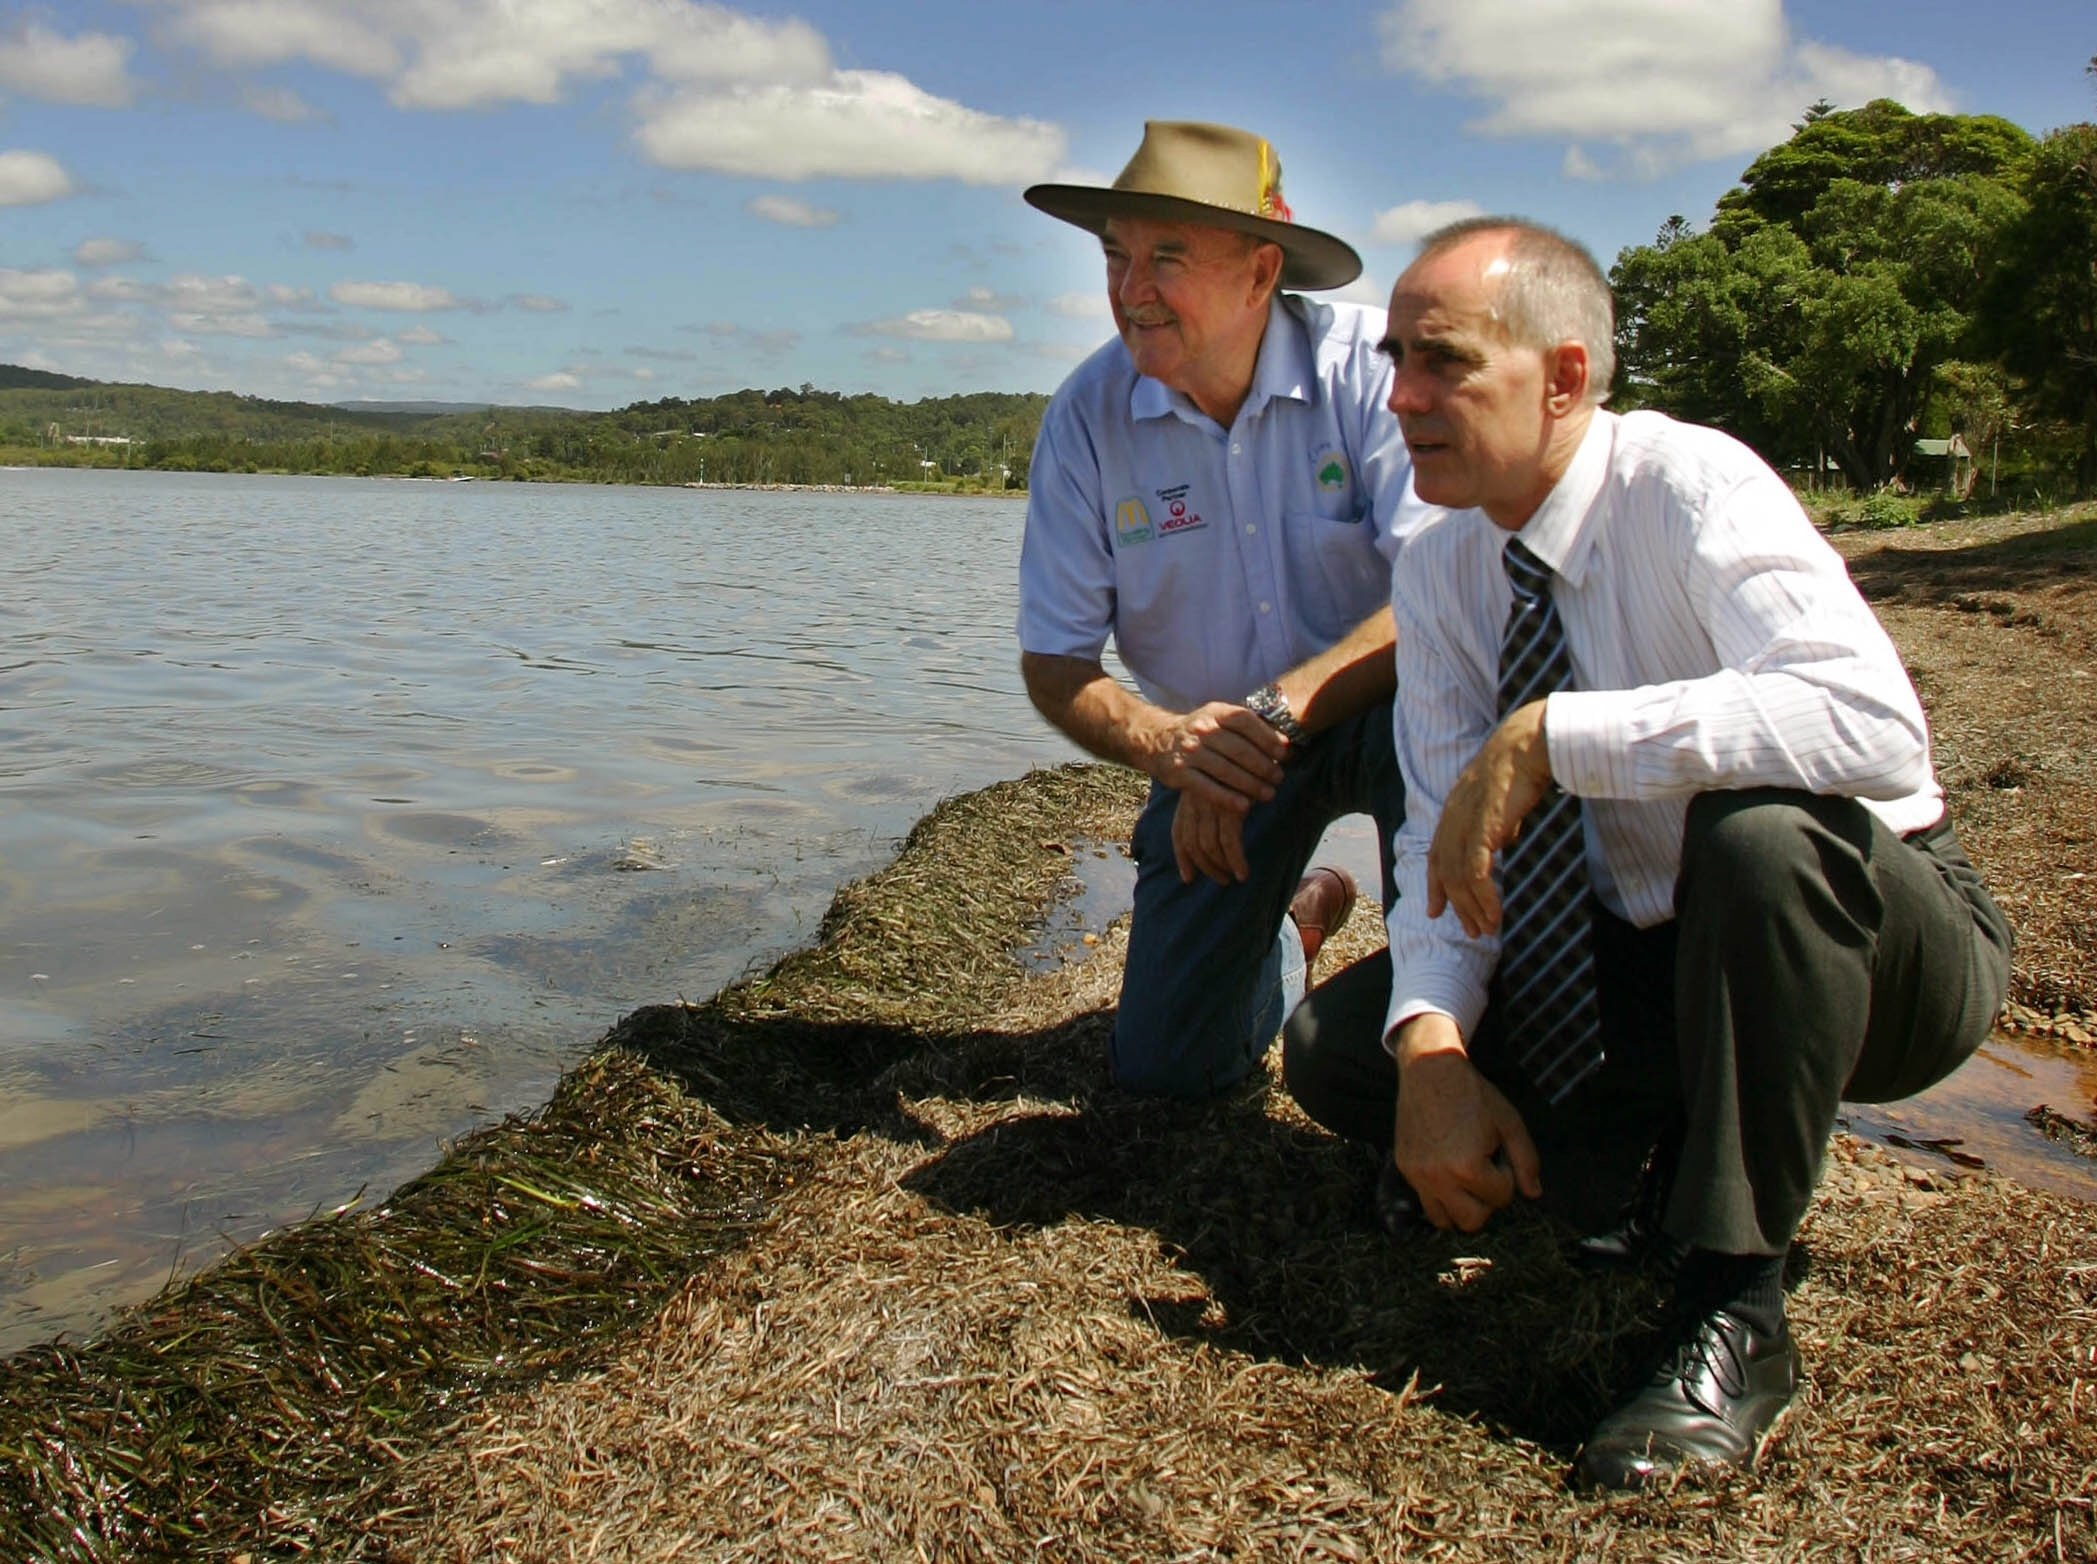 I was saddened to hear this morning of the death of environmental champion and former Australian of the Year Ian Kiernan OAM. He was a great friend of many in Lake Macquarie.